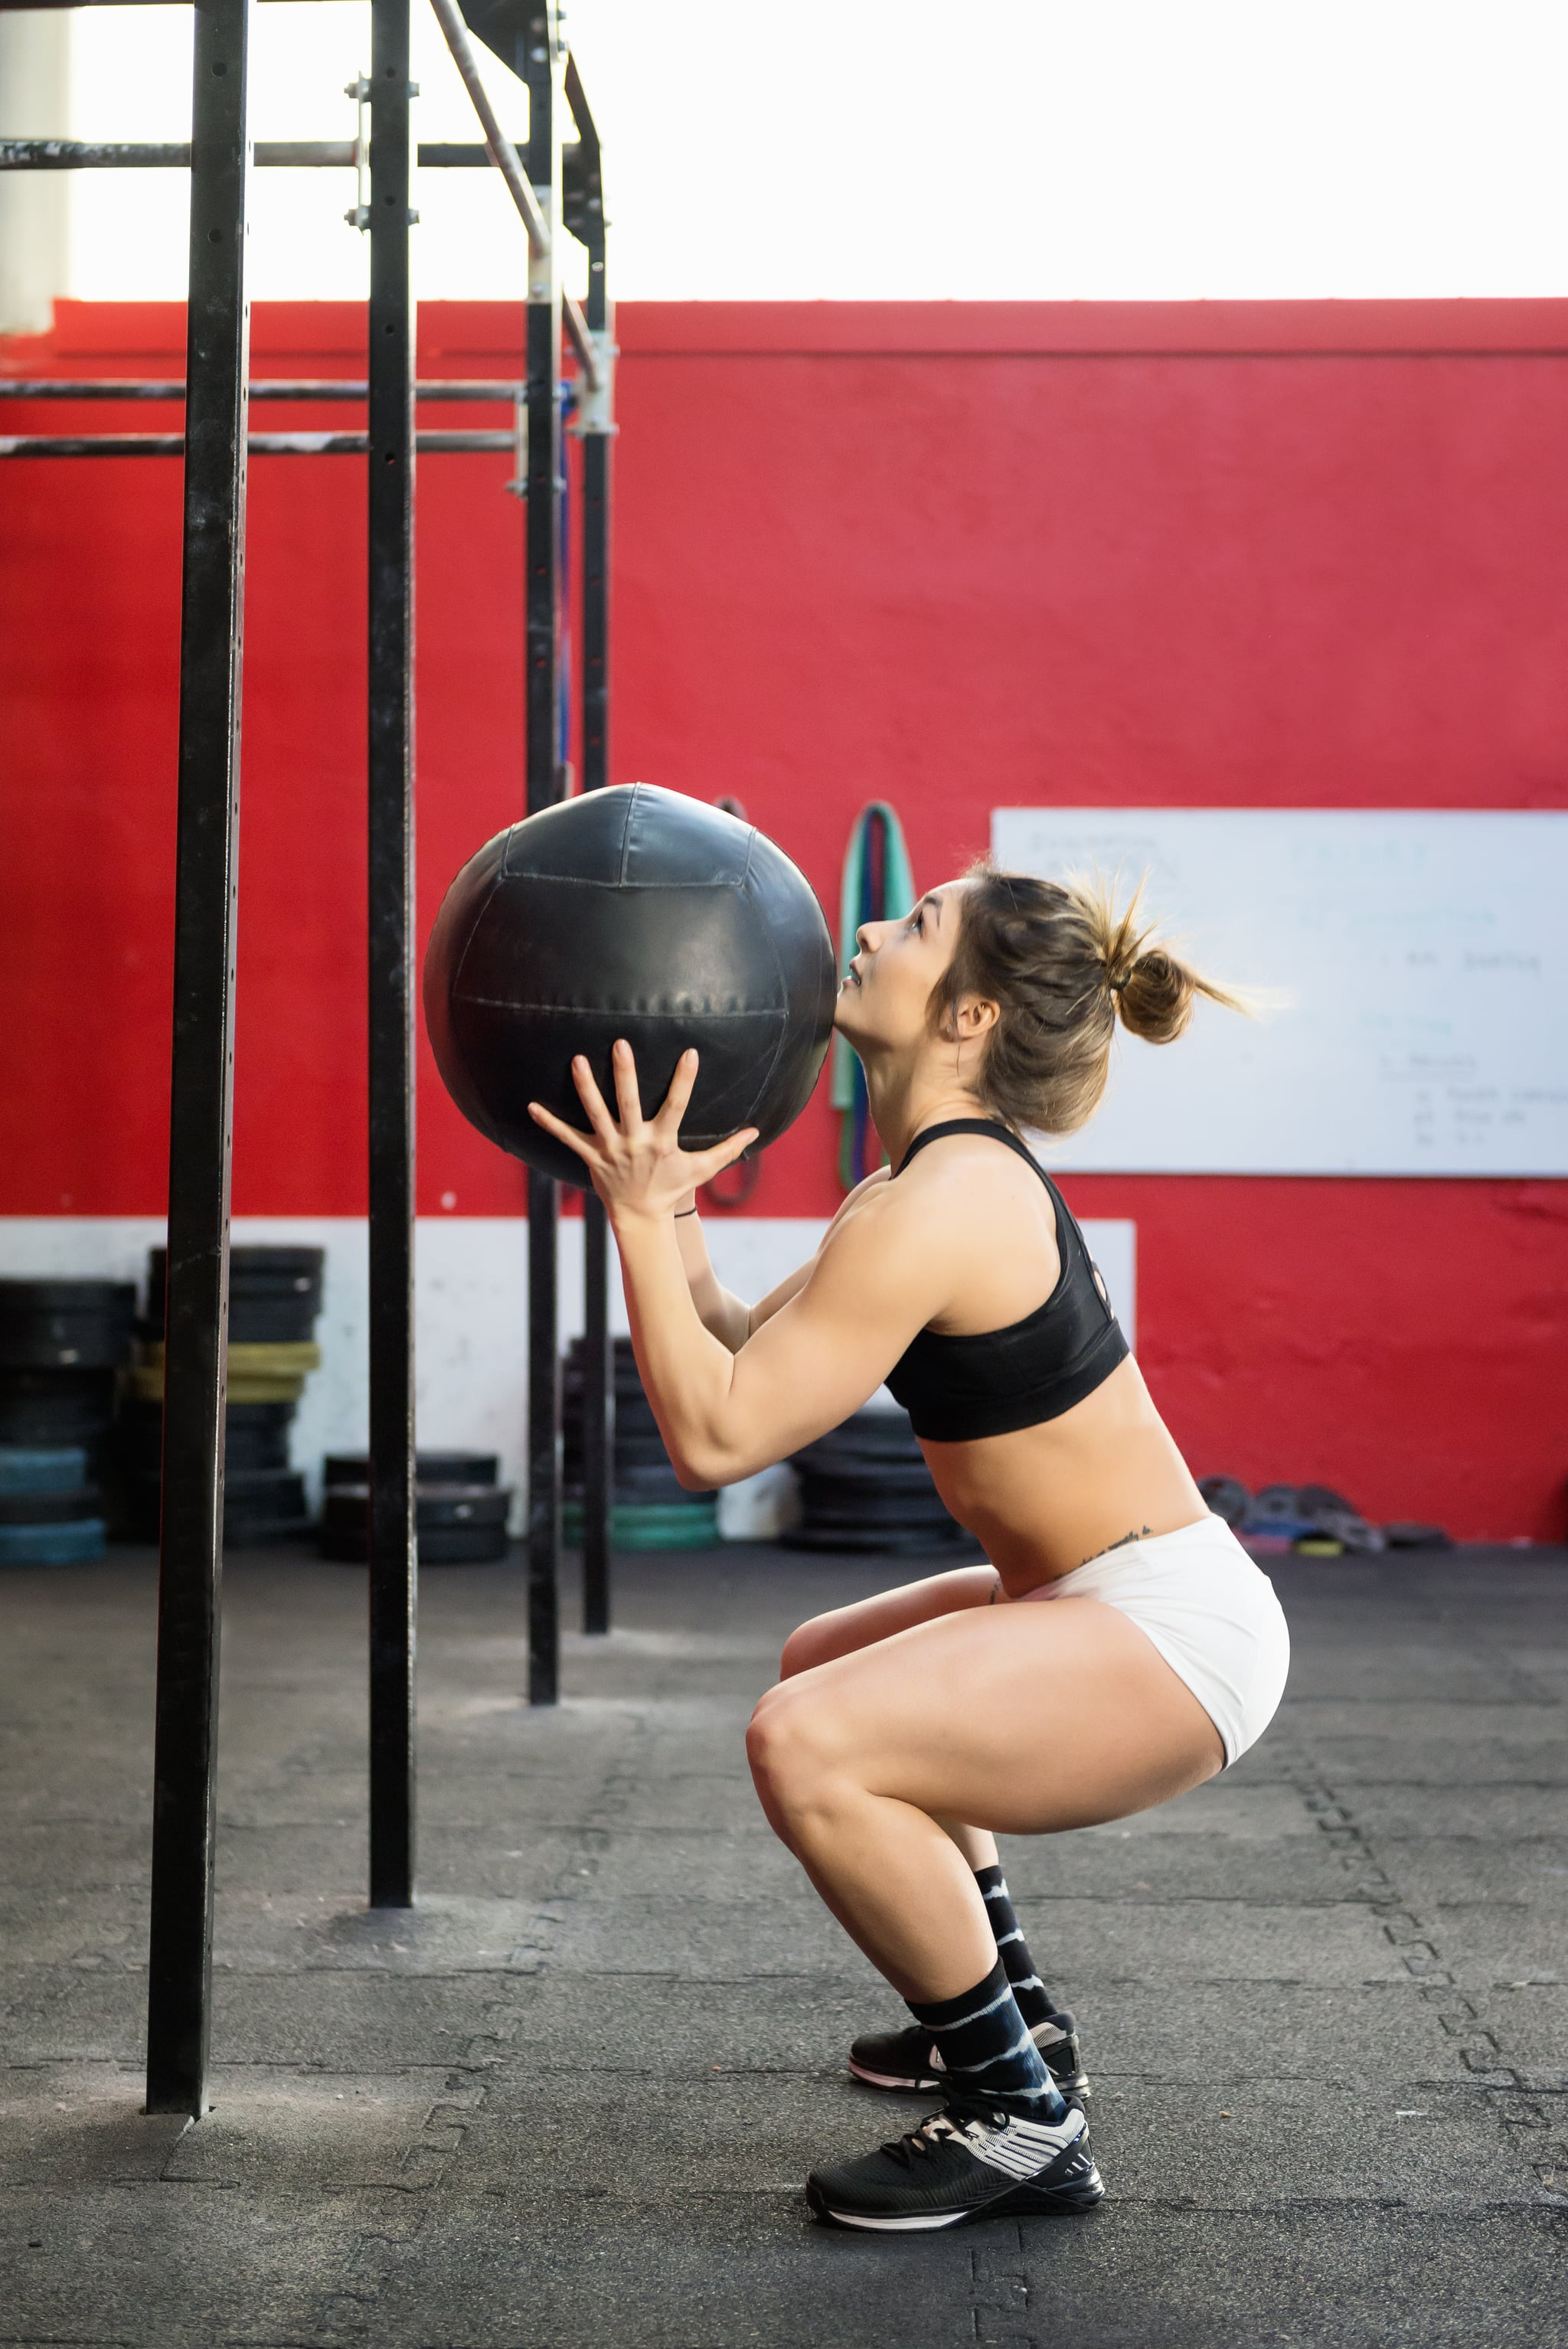 Vertical color profile view image of muscled woman training at gym with a medicine ball.